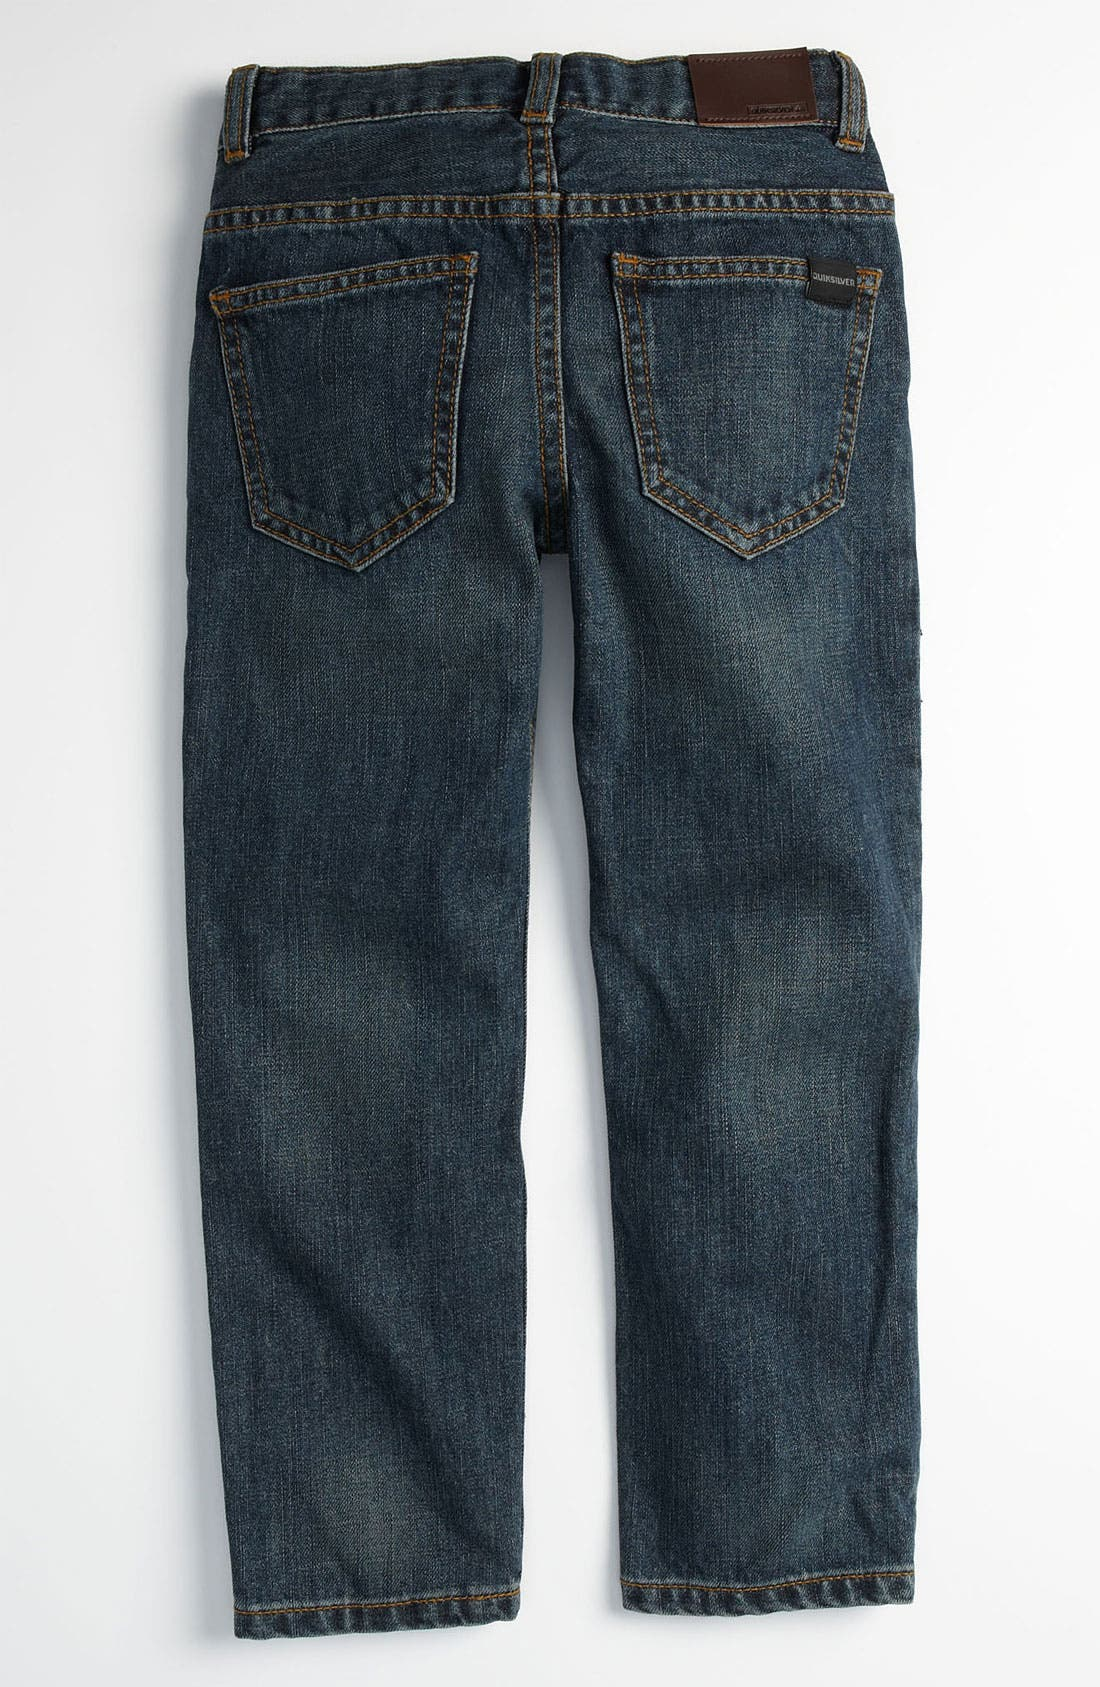 Alternate Image 1 Selected - Quiksilver 'Distortion' Slim Straight Leg Jeans (Little Boys)